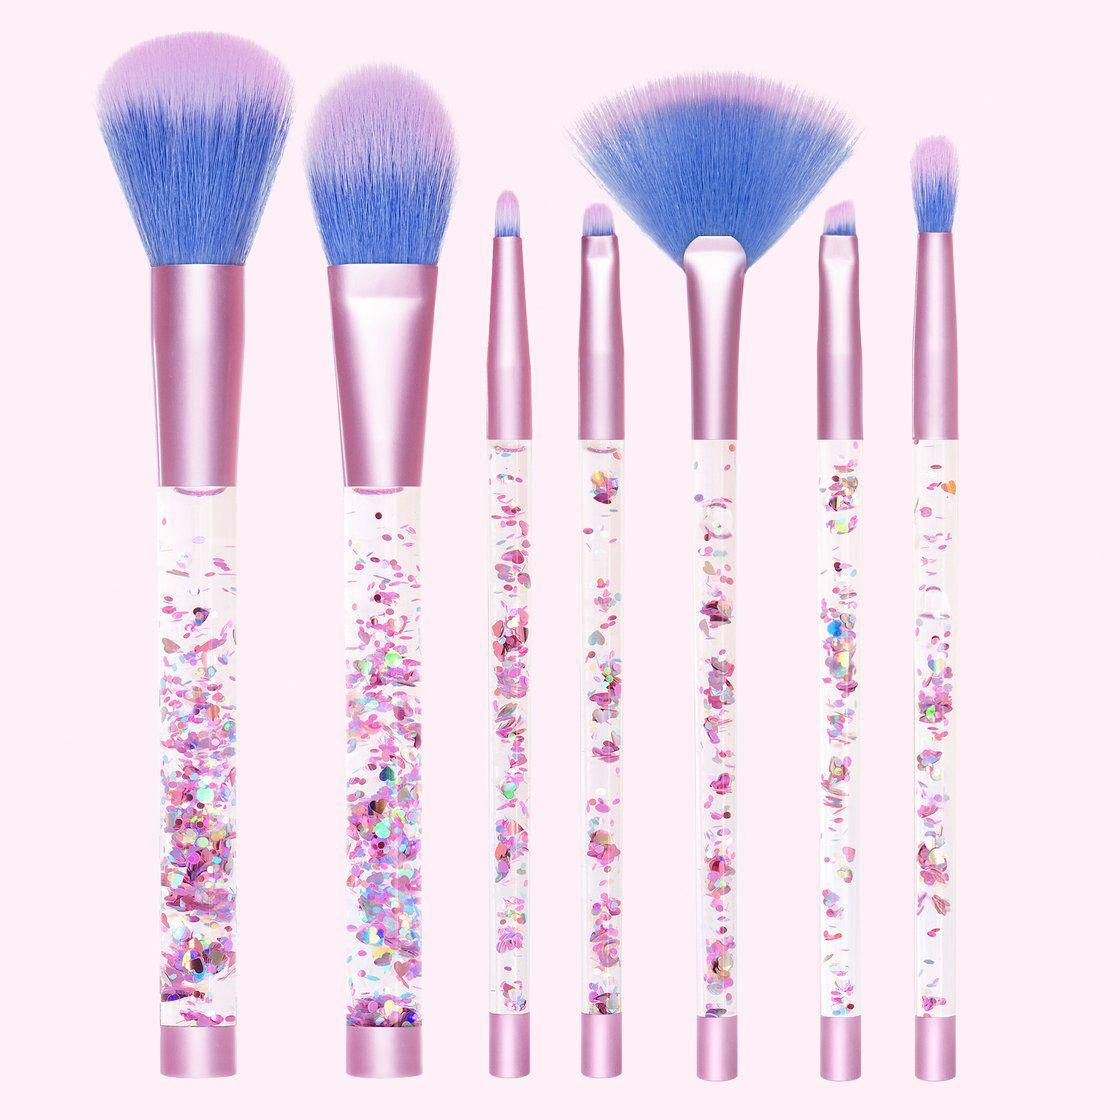 makeup brushes aquarium liquid glitter makeup brushes vegan cruelty free makeup cosmetics #bestmakeupideas